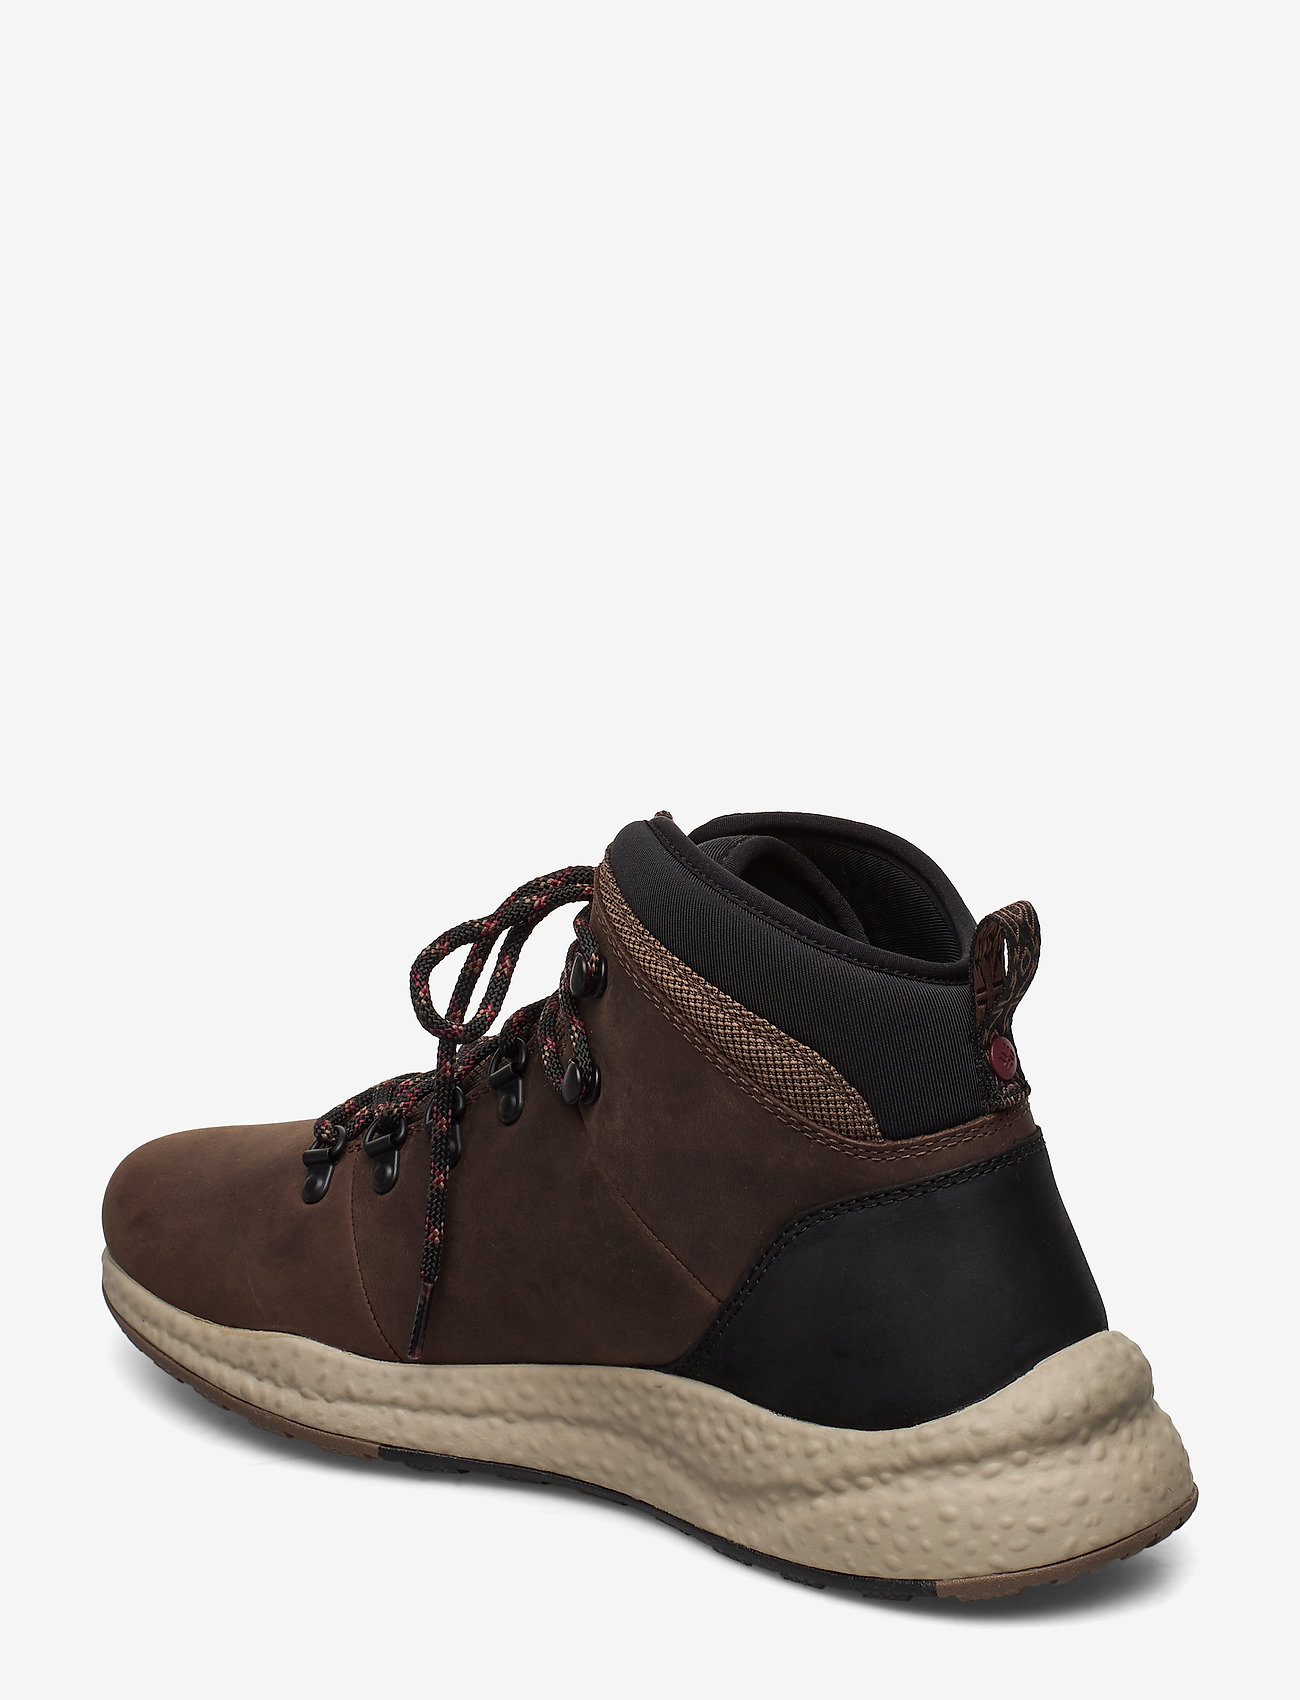 Sh/ft??Wp Hiker (Espresso Ii, Re) - Columbia